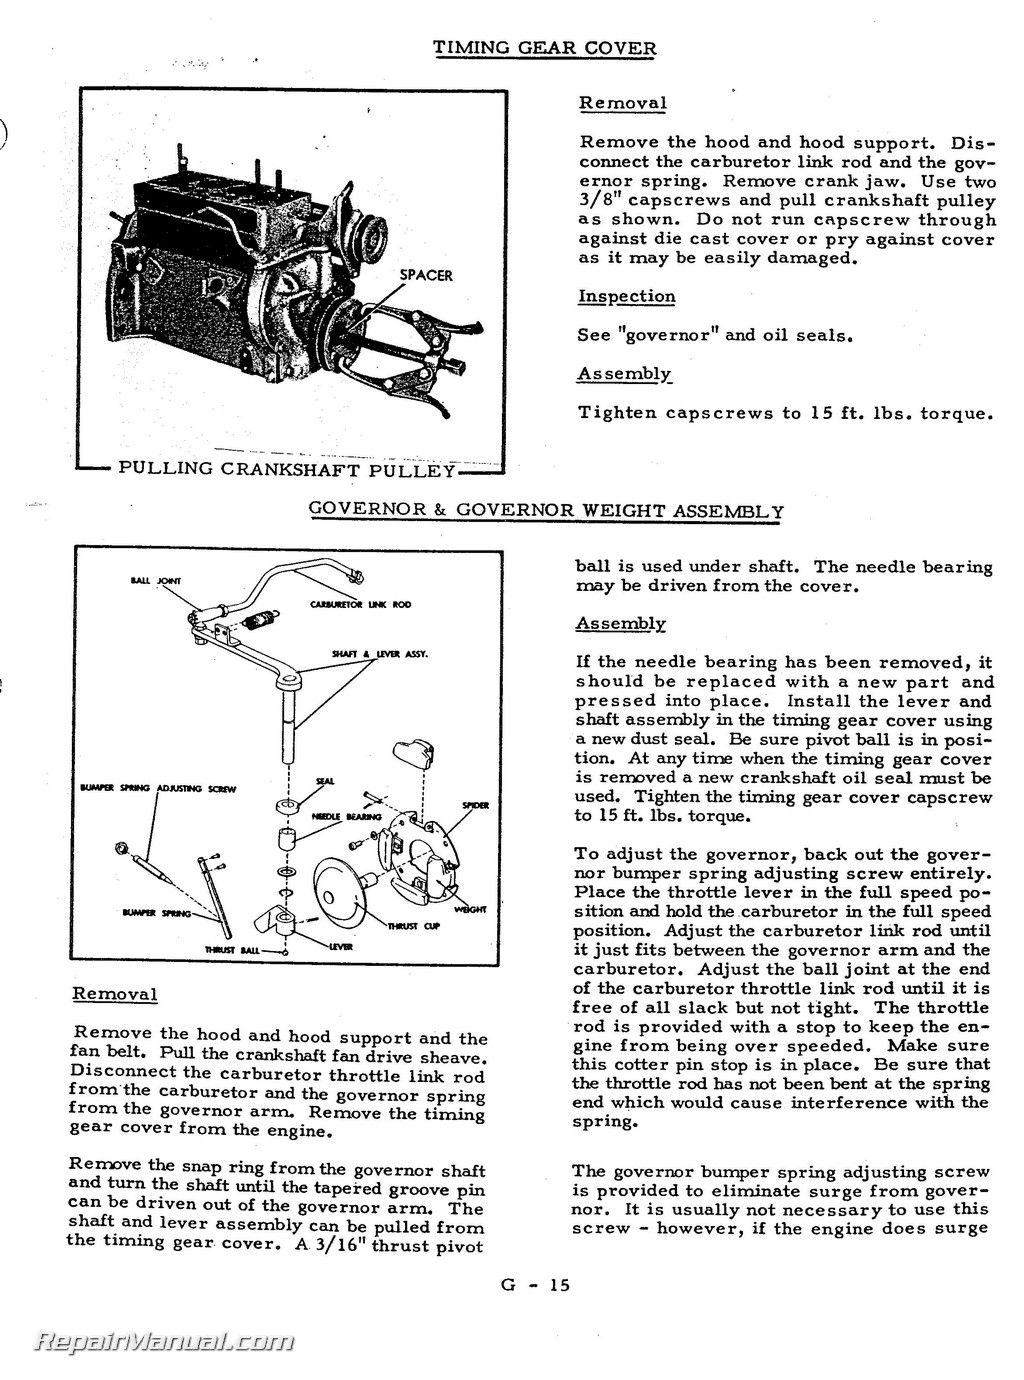 Allis Chalmers Model G Tractor Repair Service Manual- Repair Manuals Online